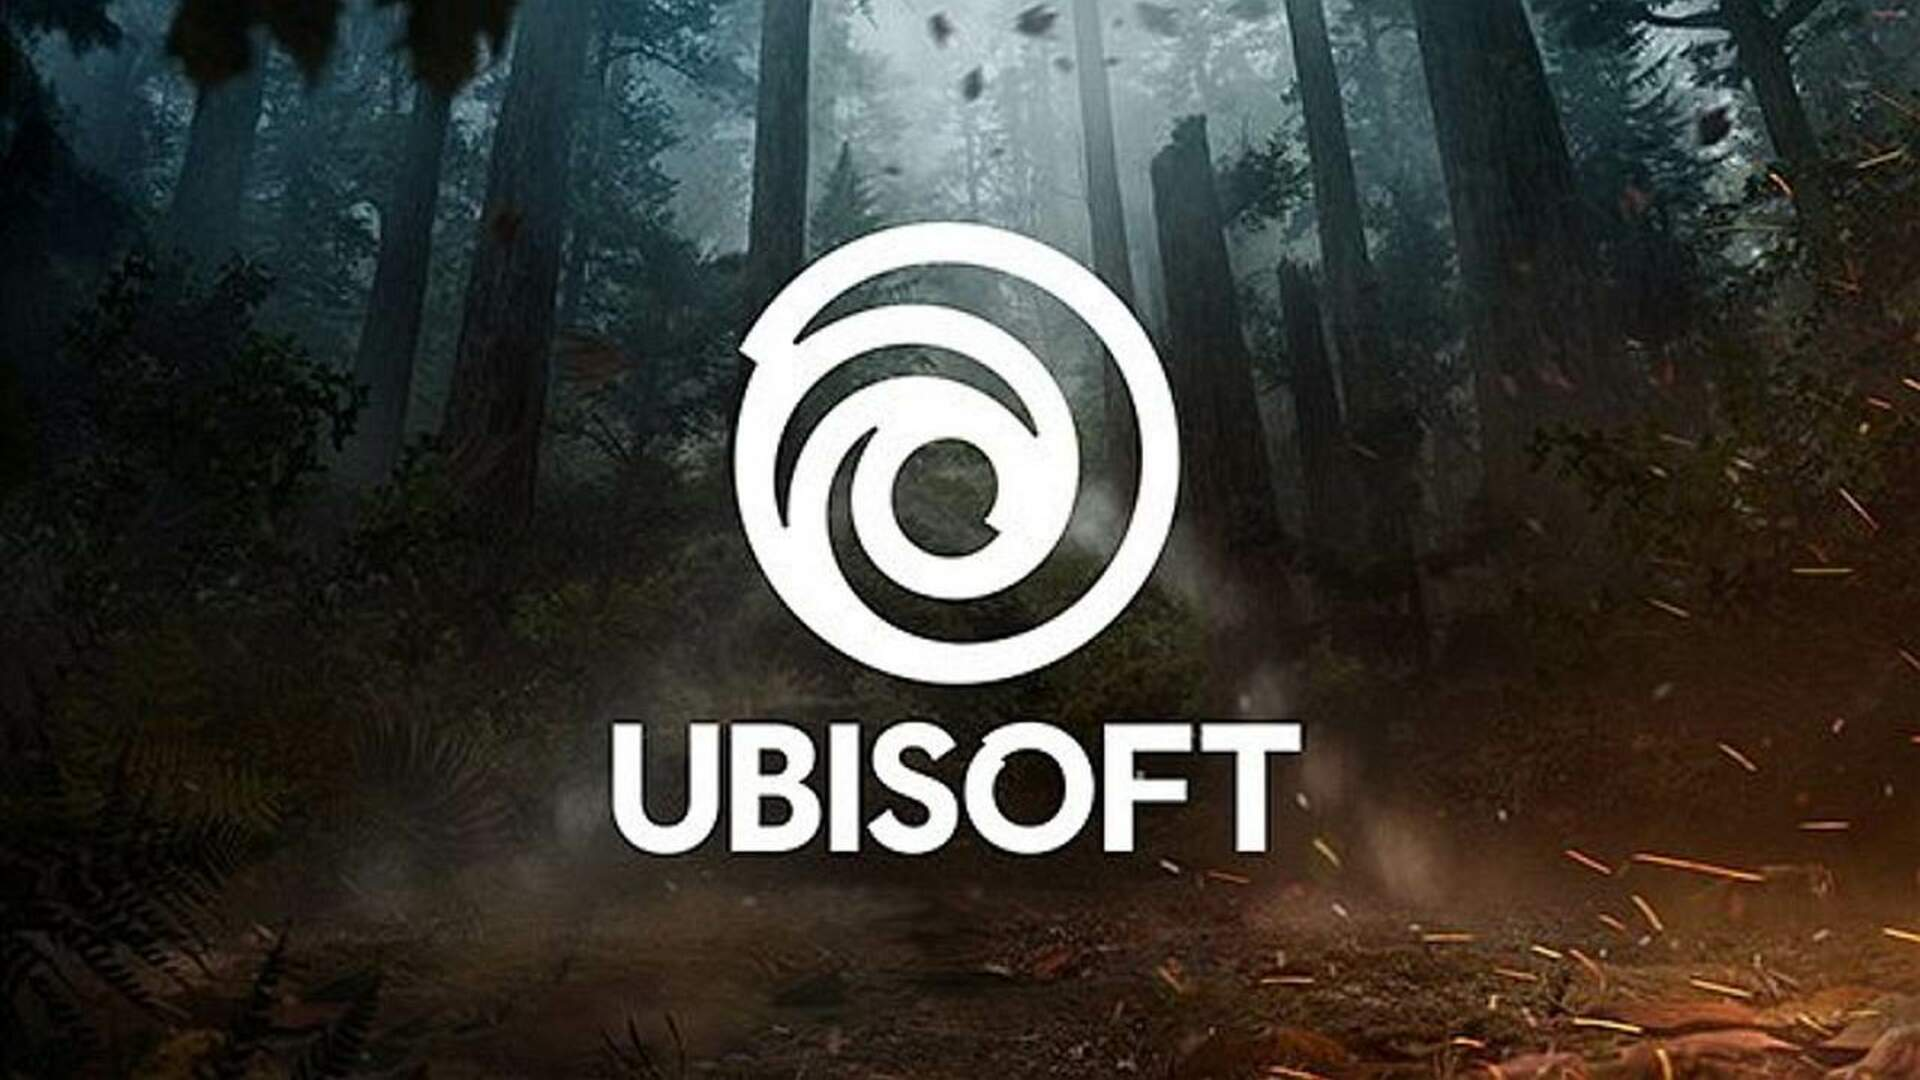 Ubisoft Hires New Diversity & Inclusion VP Following Reports on Discrimination and Abuse